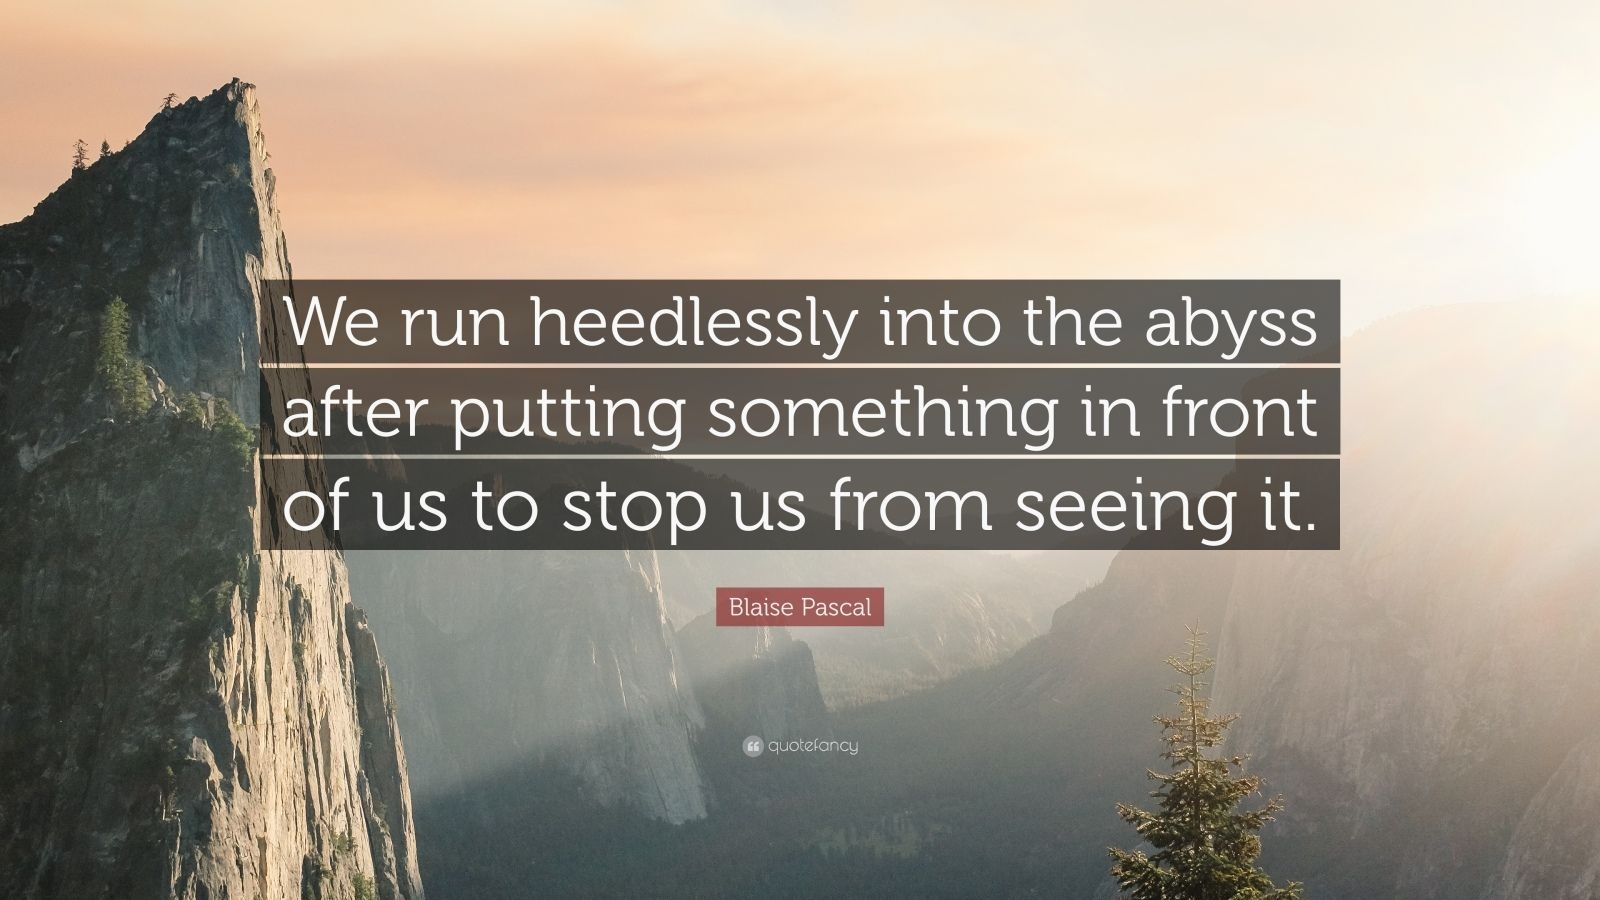 """Blaise Pascal Quote: """"We run heedlessly into the abyss after putting something in front of us to stop us from seeing it."""""""